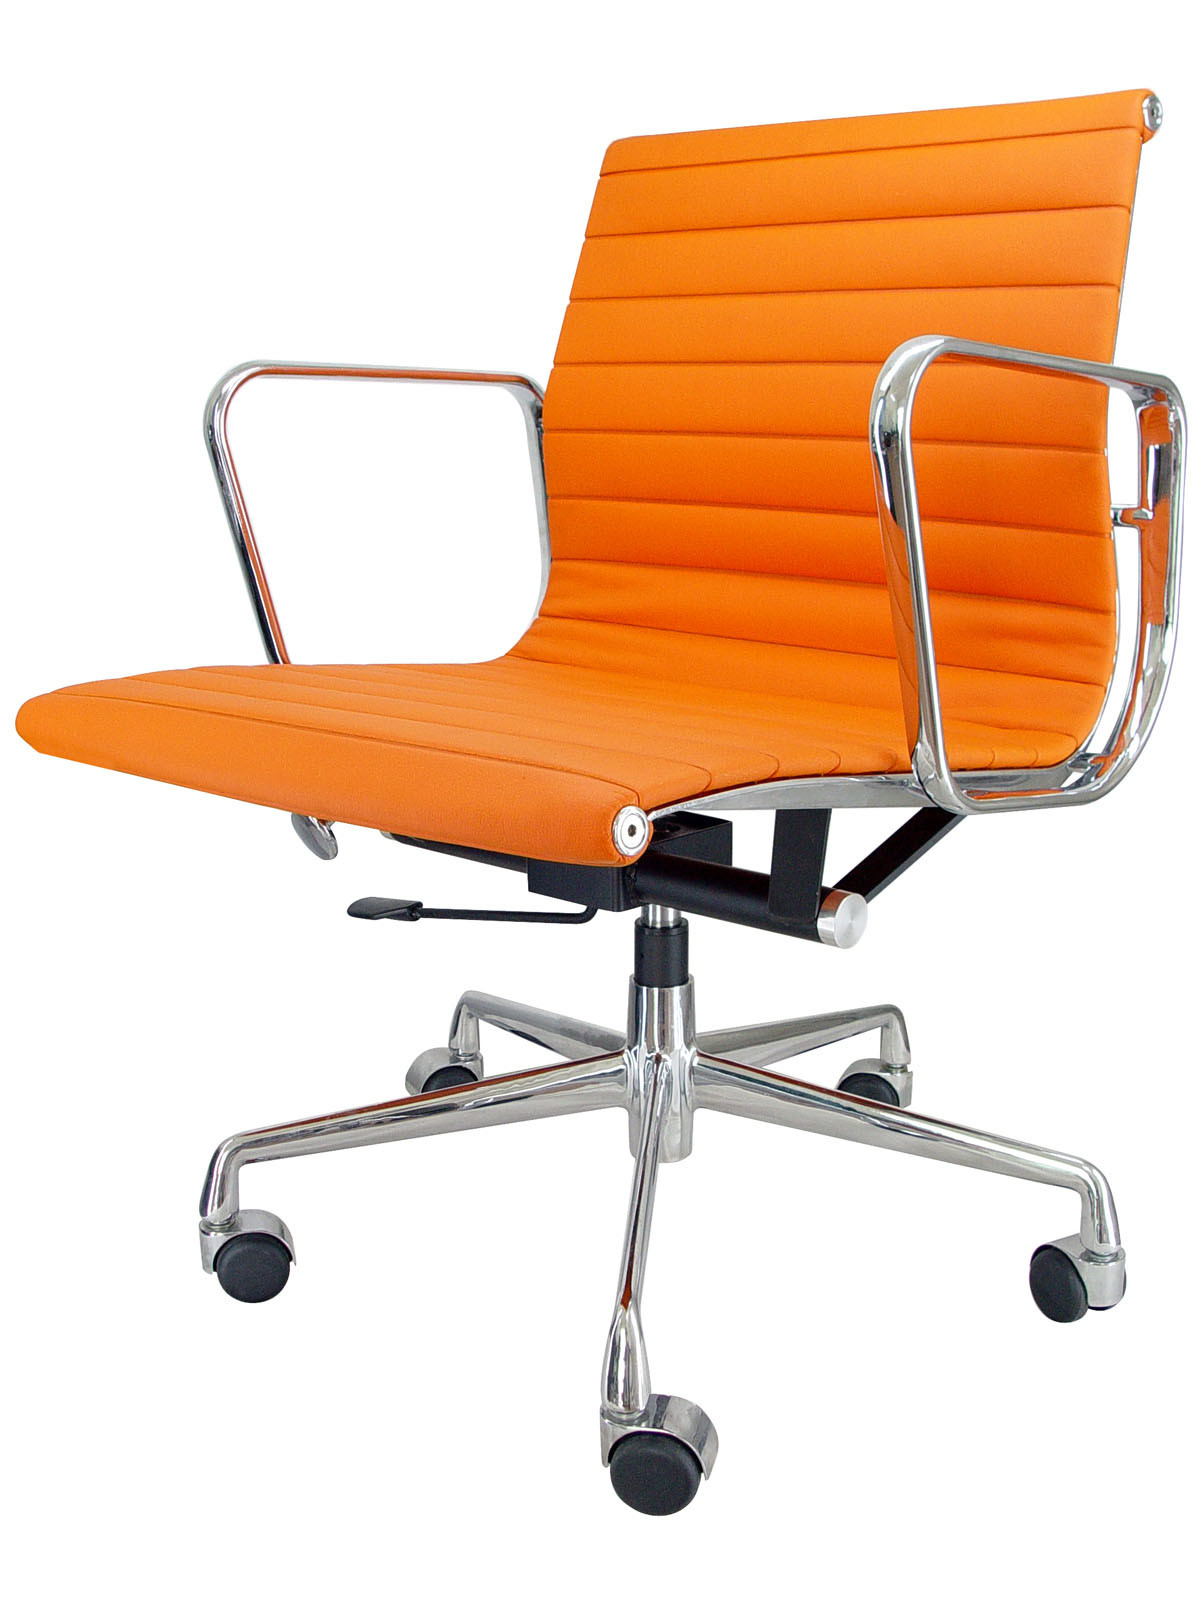 Orange Leather Chair China Orange Eames Chair Eoc Lme1 China Swivel Chair